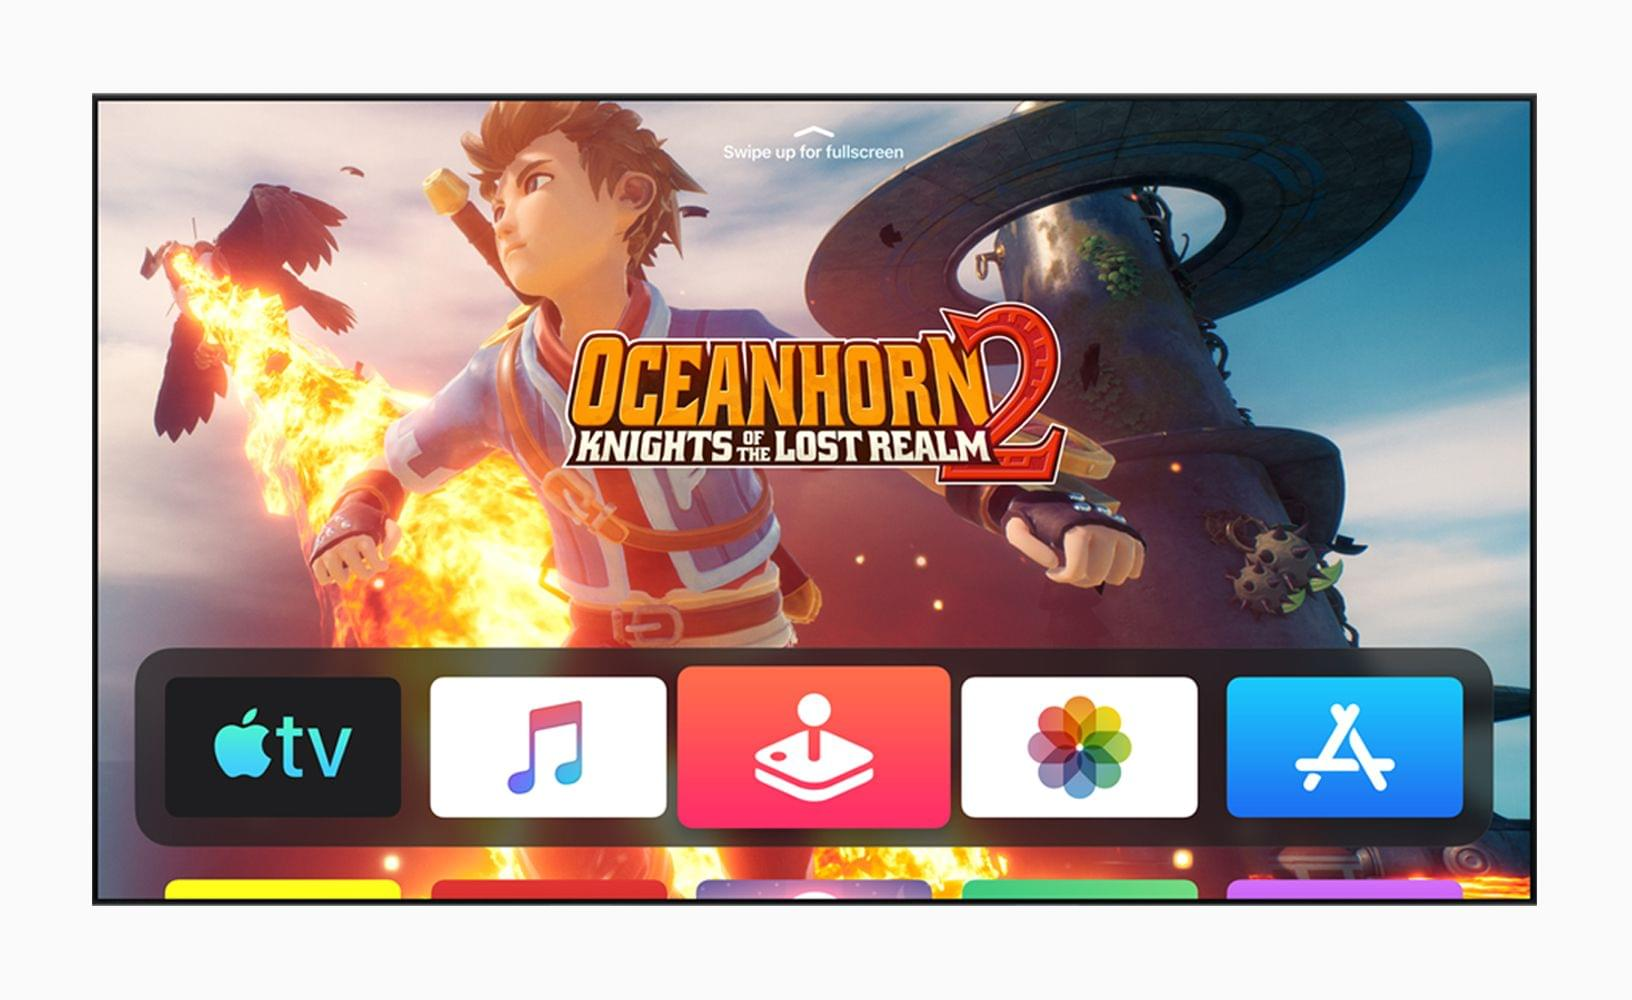 Apple's New Siri Remote Lacks Motion Control Sensors Required by Some Apple TV Games